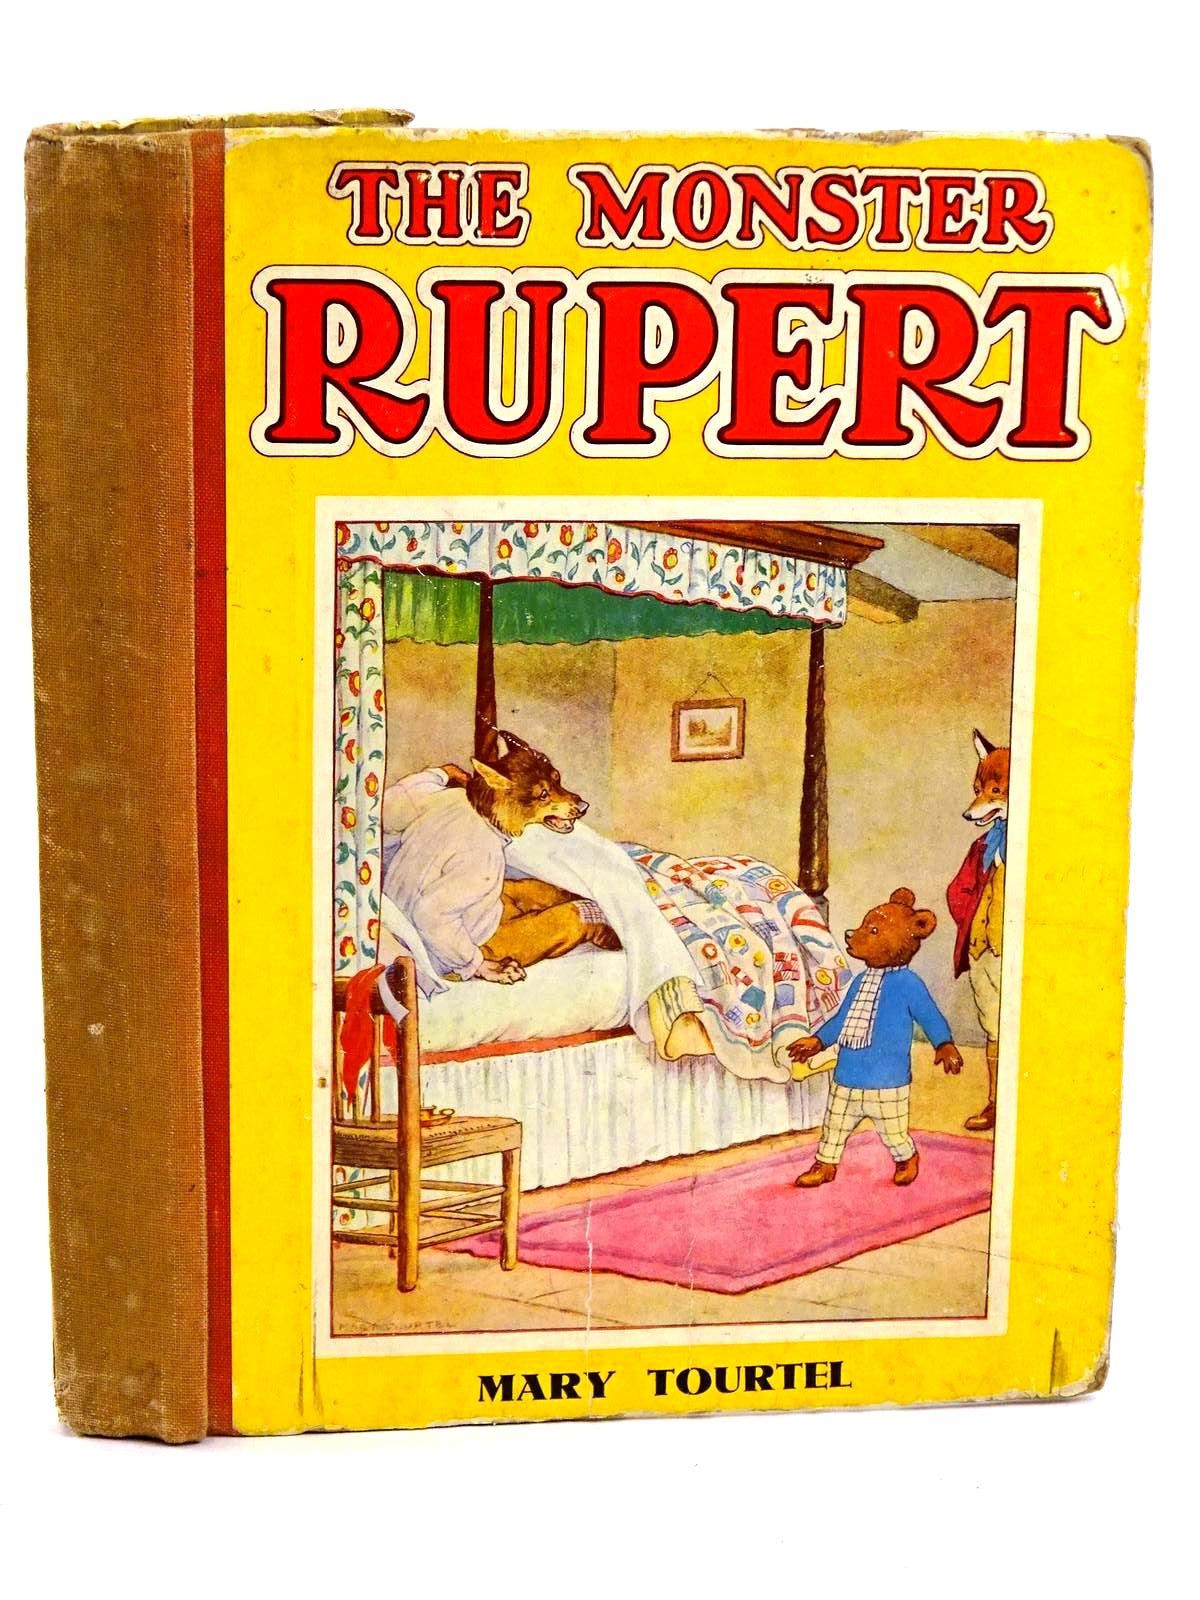 Photo of THE MONSTER RUPERT written by Tourtel, Mary illustrated by Tourtel, Mary published by Sampson Low, Marston & Co. Ltd. (STOCK CODE: 1318248)  for sale by Stella & Rose's Books